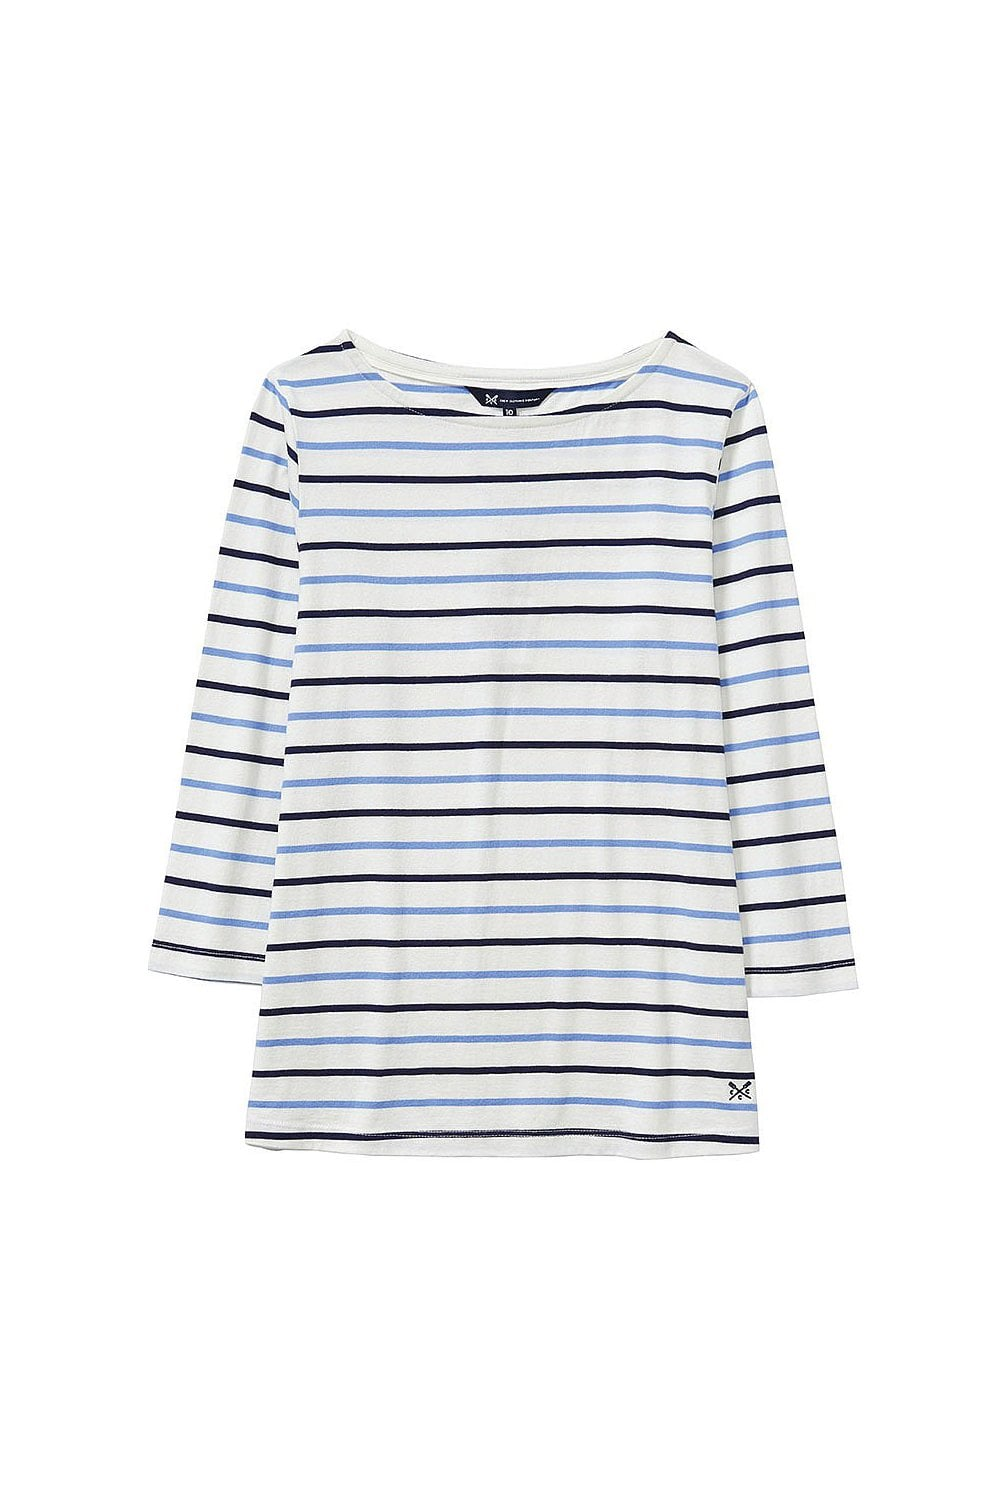 6abe0ce3ac1d Crew Clothing Womens Essential Breton Top - White/Light Indigo/Navy -  Womenswear from Potters of Buxton UK